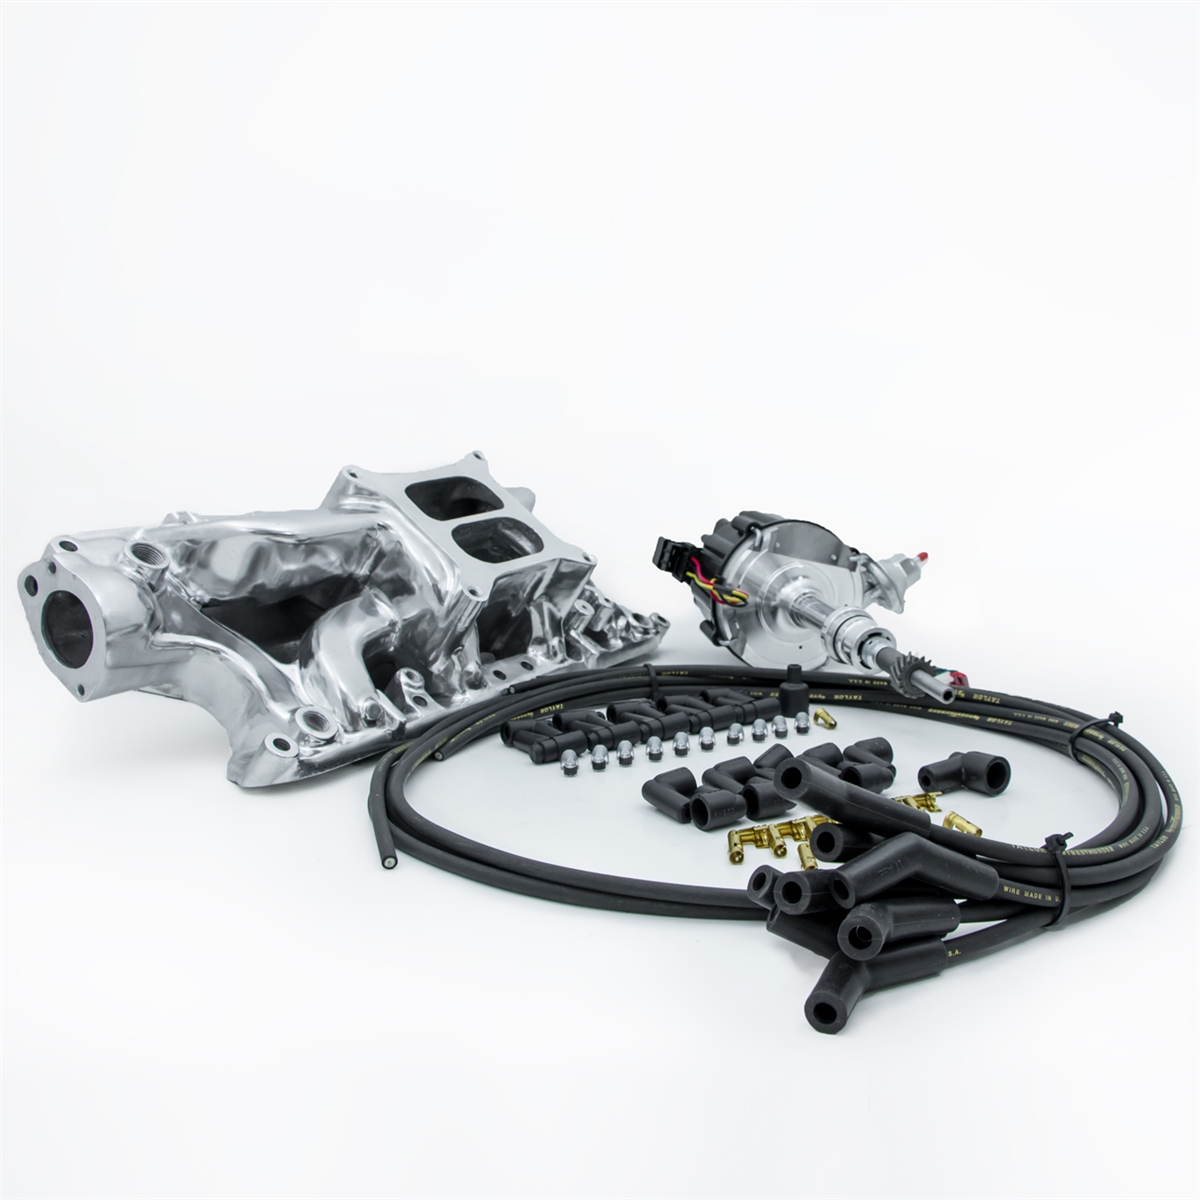 Ford Mustang 50 Liter Cid 302 Conversion Kit Efi To Carb Intake For A Wiring Harness Kits Distributor